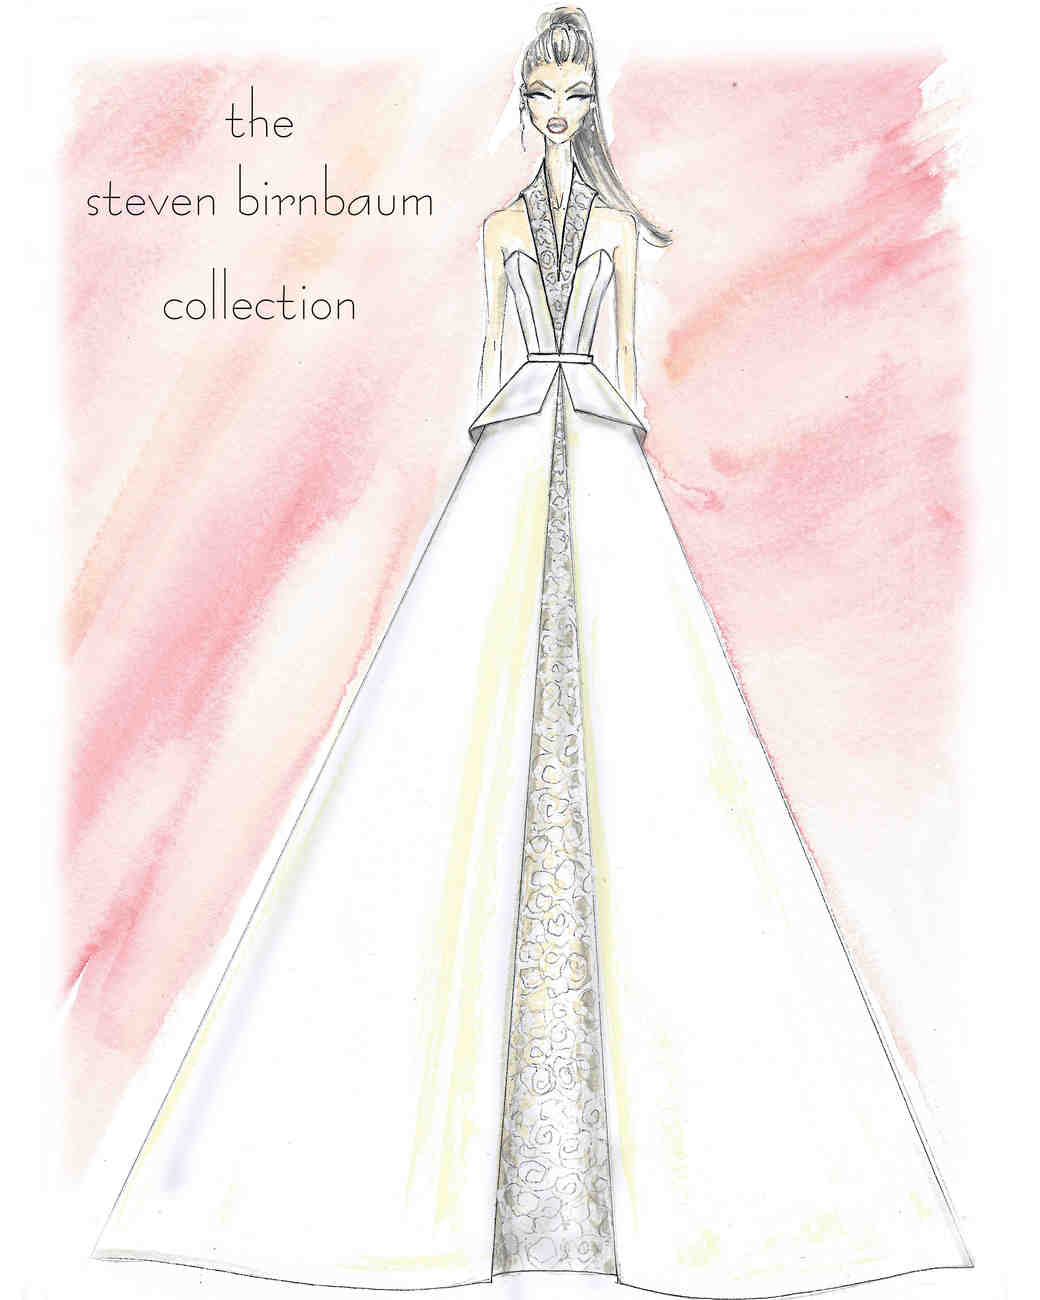 steven birnbaum collection wedding dress sketch